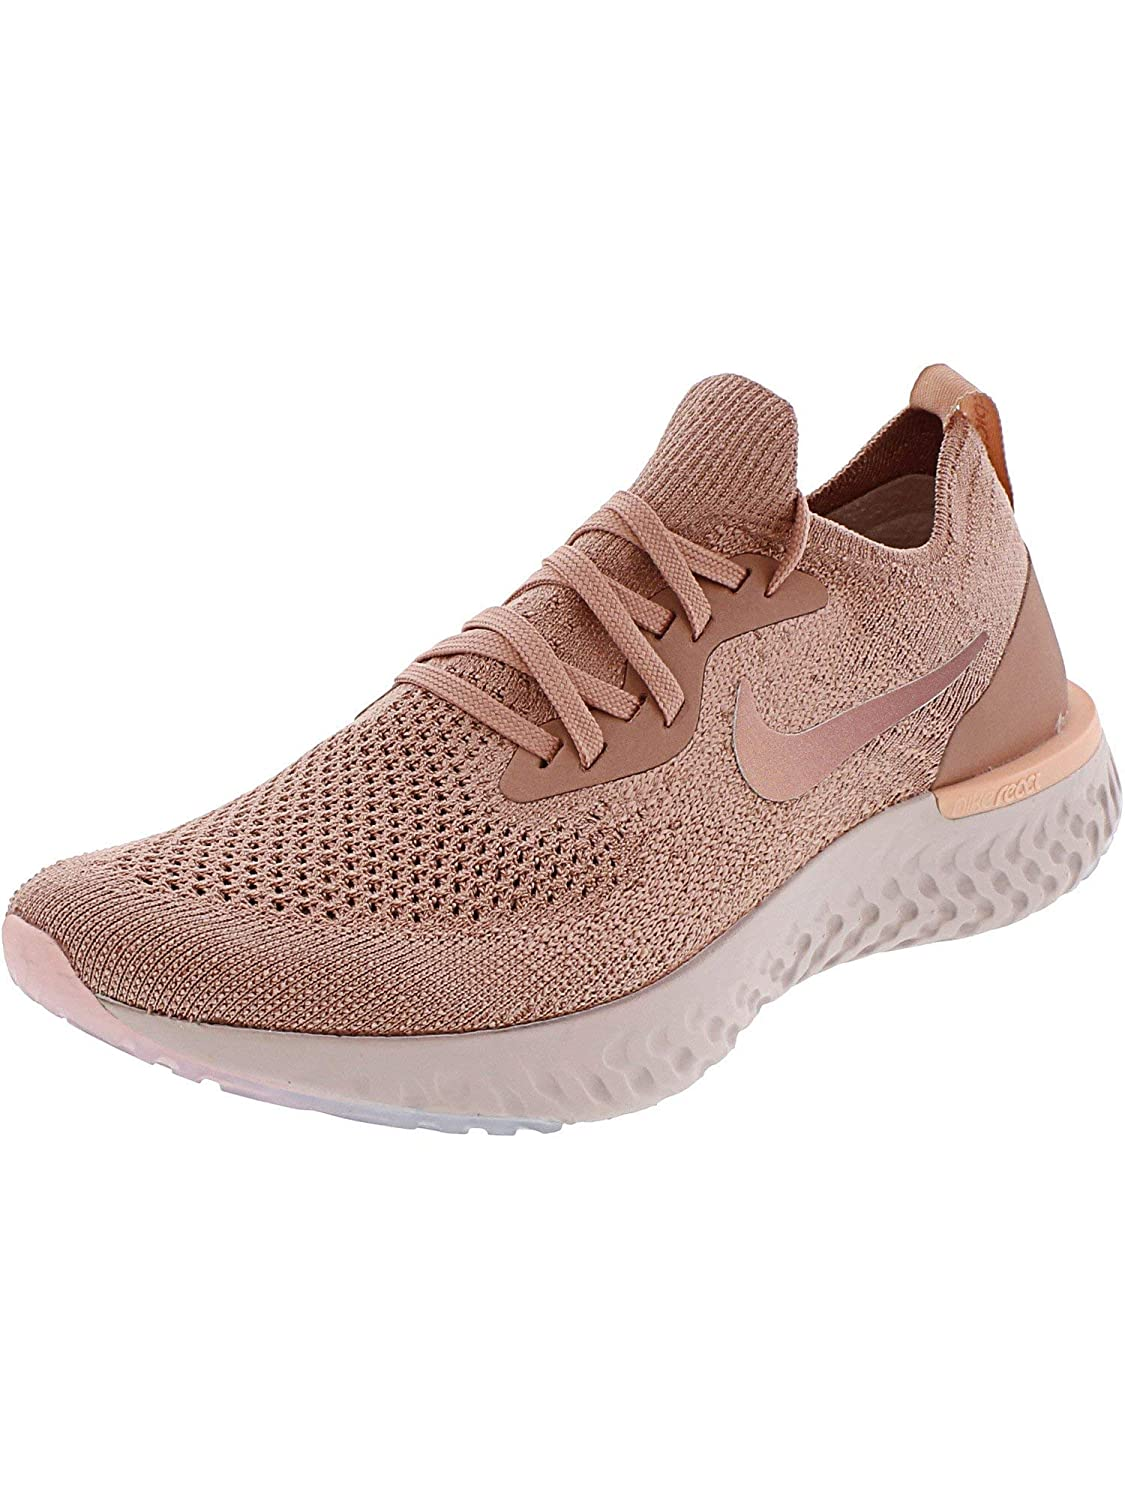 MultiCouleure (Rust rose rose Tint Tropical rose 602) Nike WMNS Epic React Flyknit, paniers Basses Femme